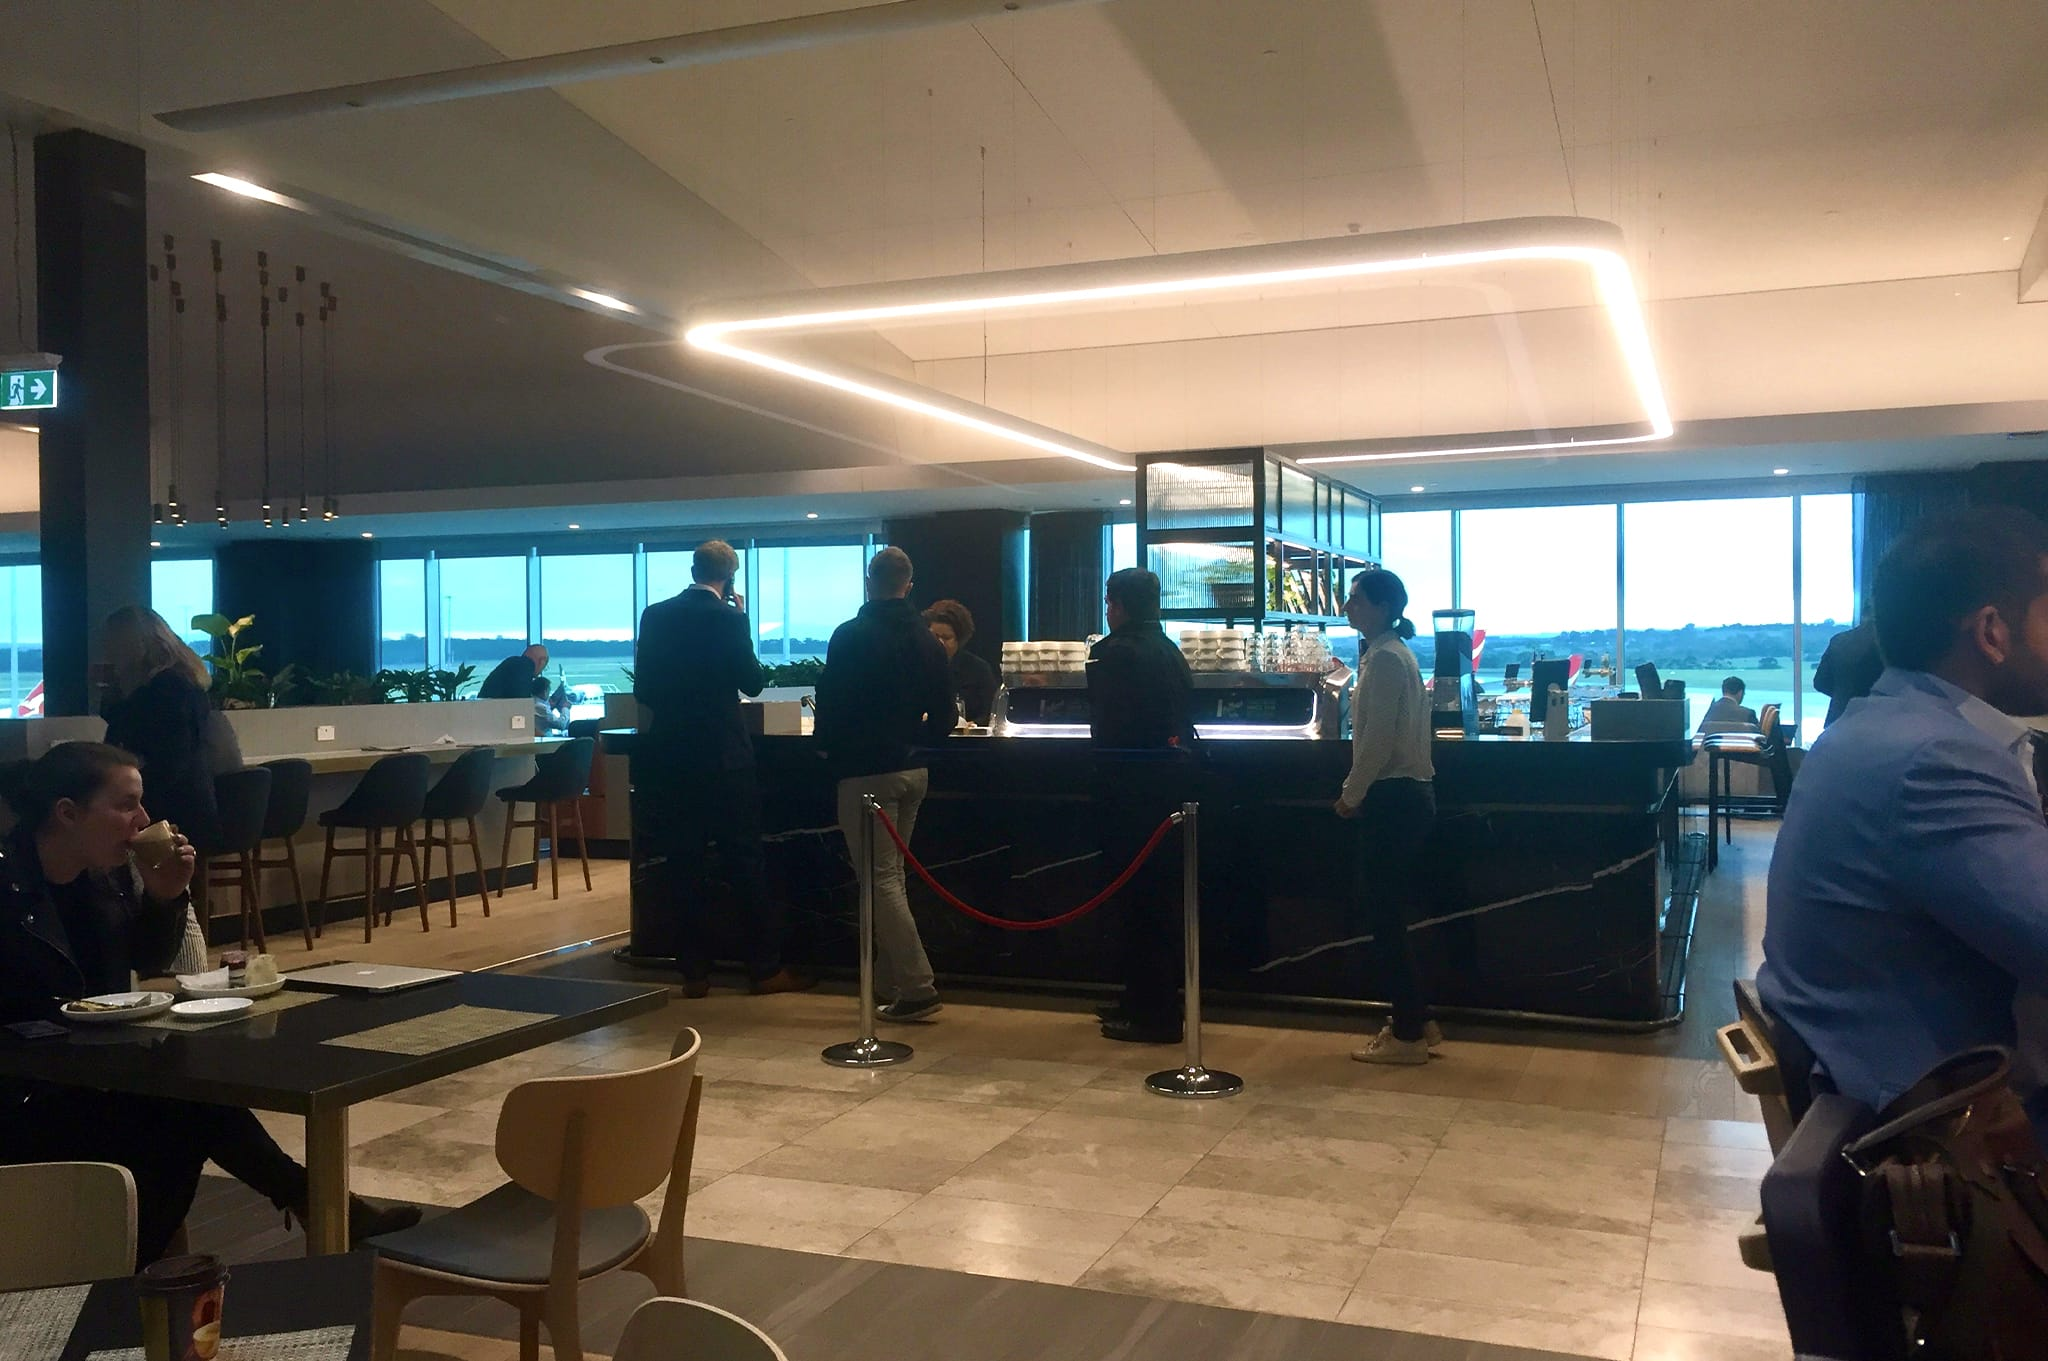 Qantas Business Class Lounge Melbourne Coffee